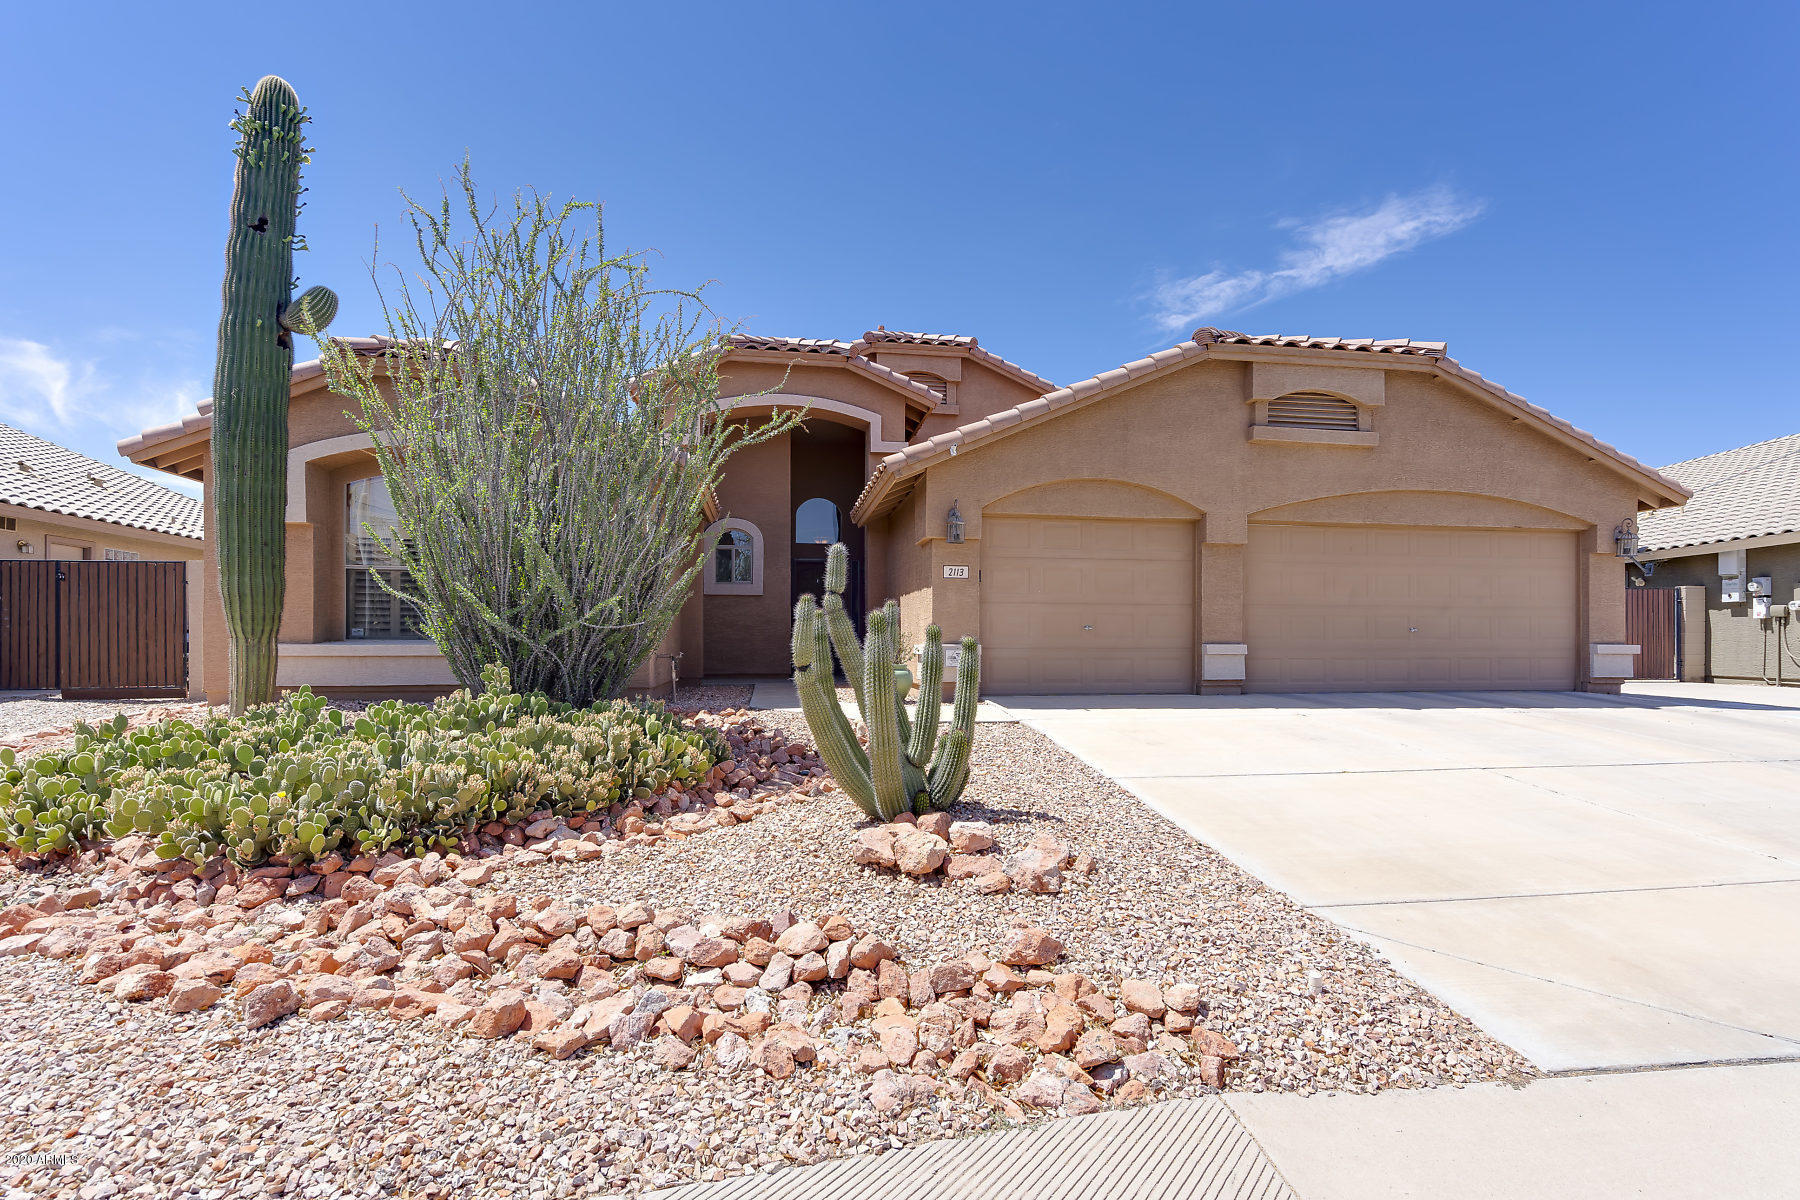 Photo of 2113 E KEMPTON Road, Chandler, AZ 85225